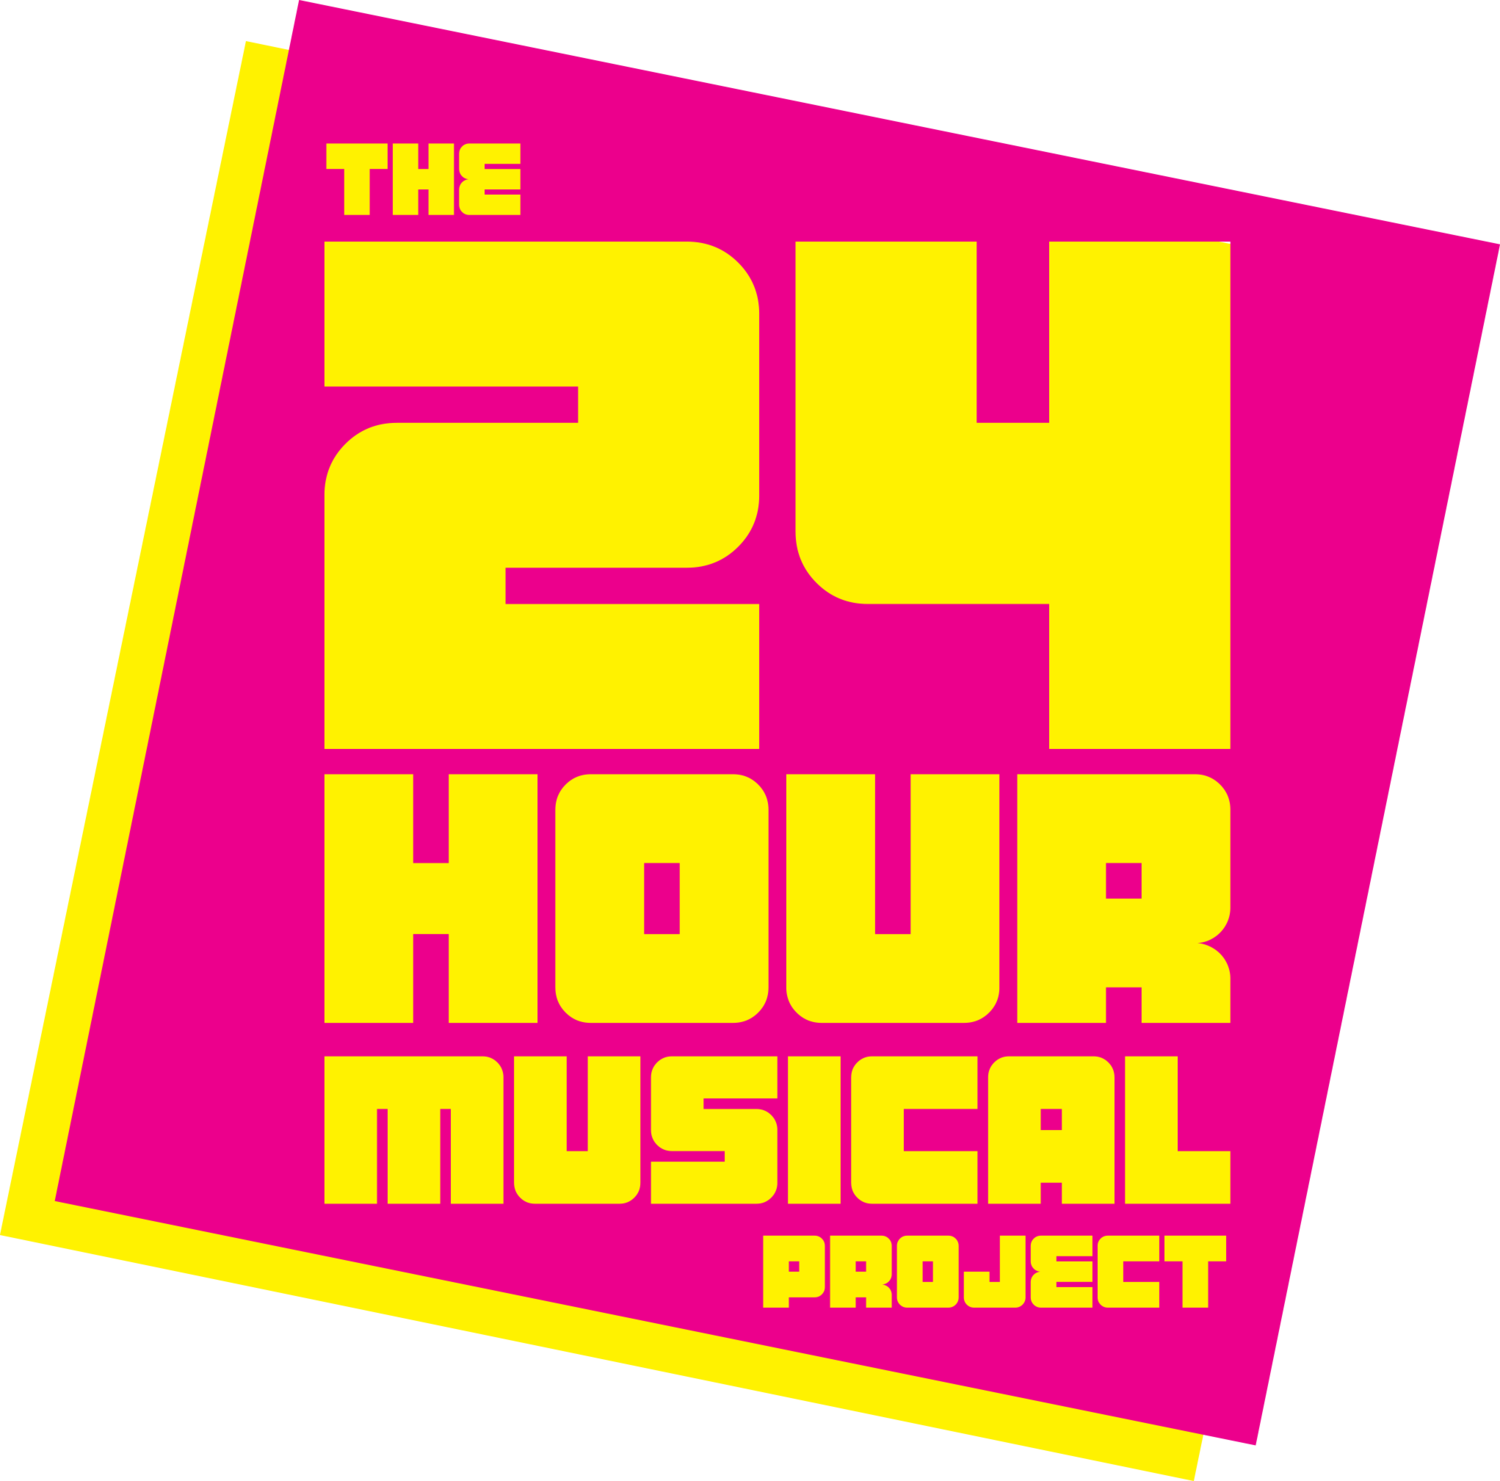 The 24 Hour Musical Project